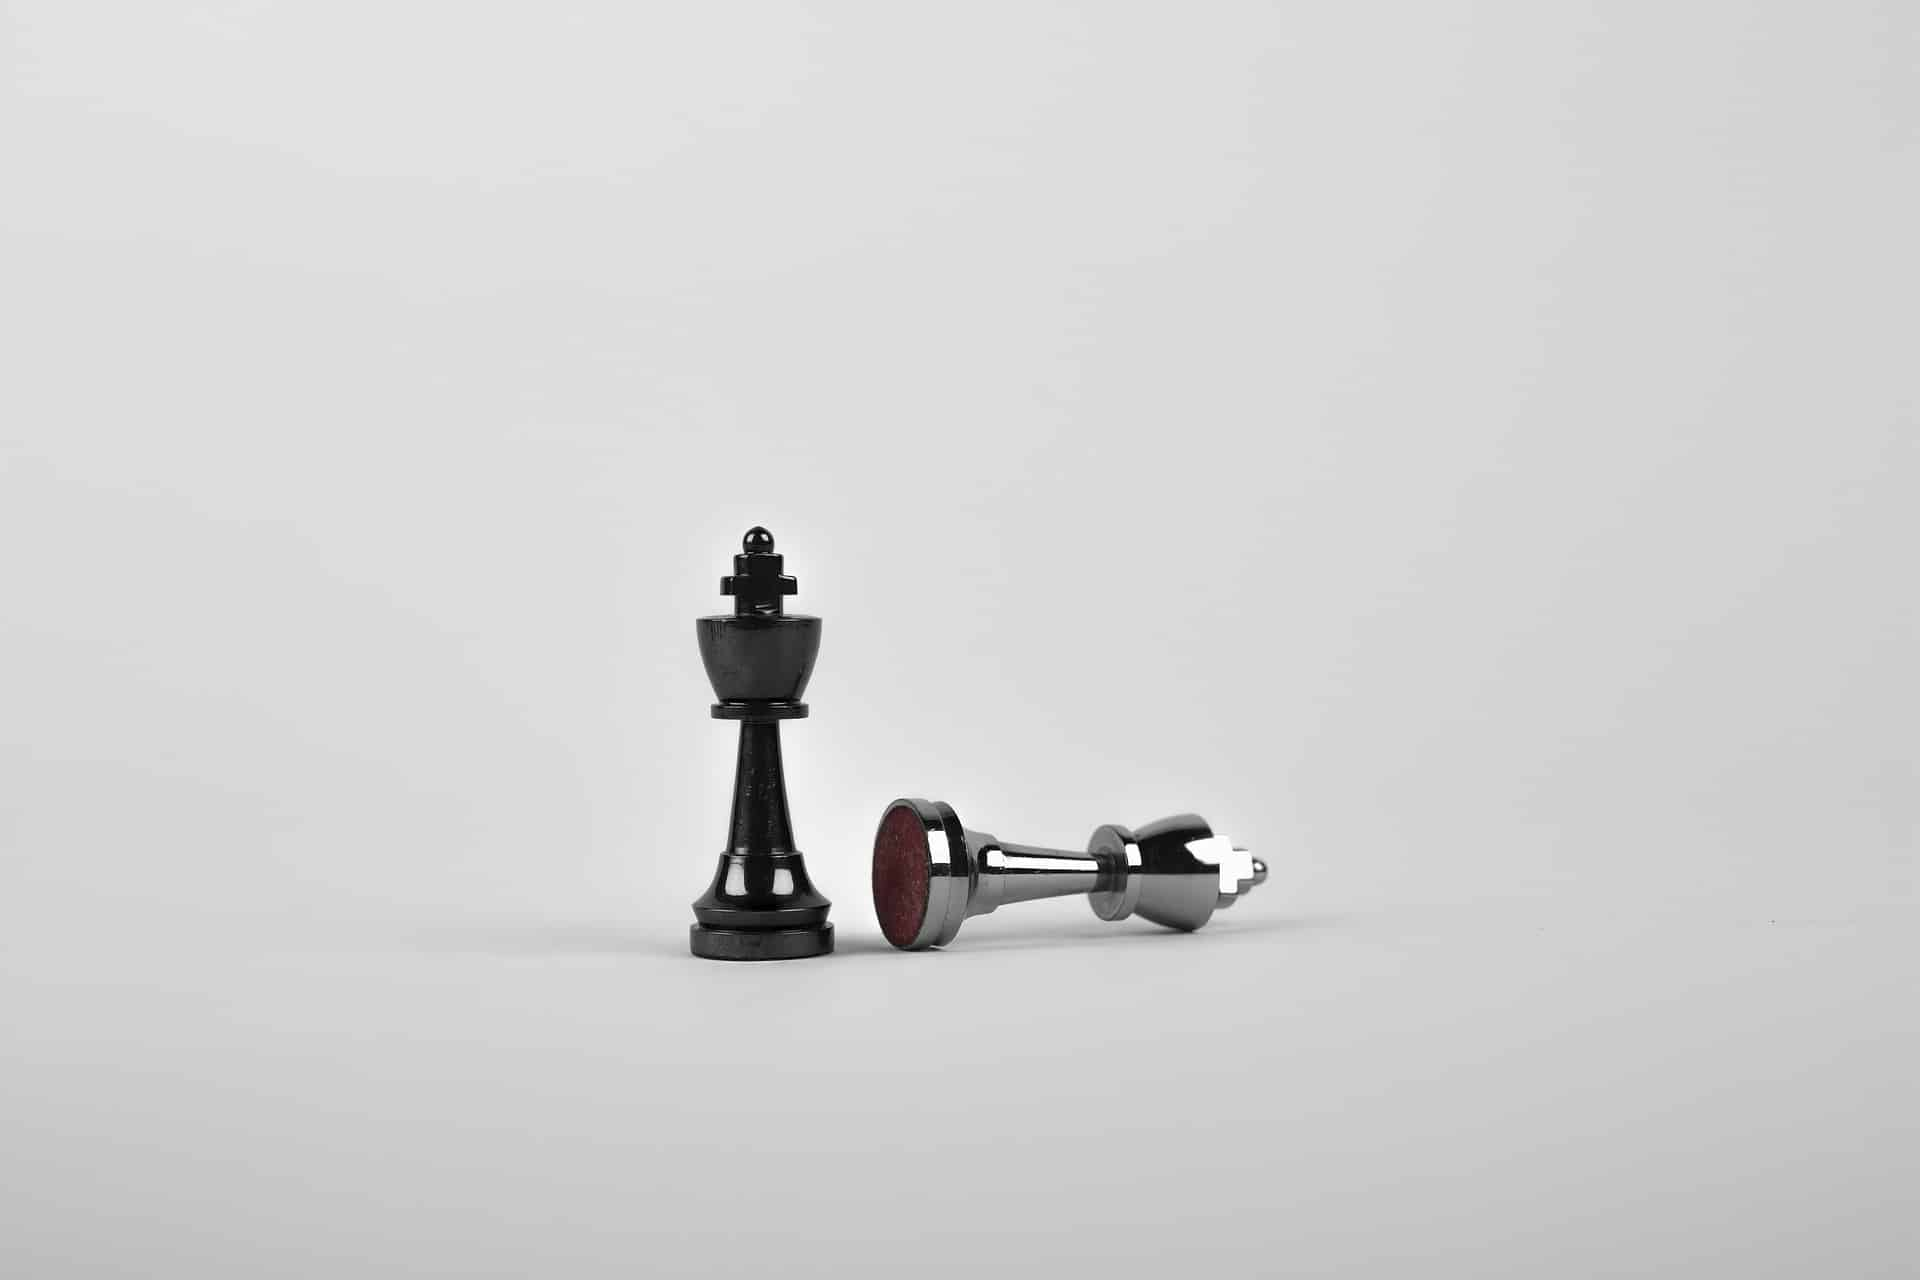 Chess – A game of strategy and skill